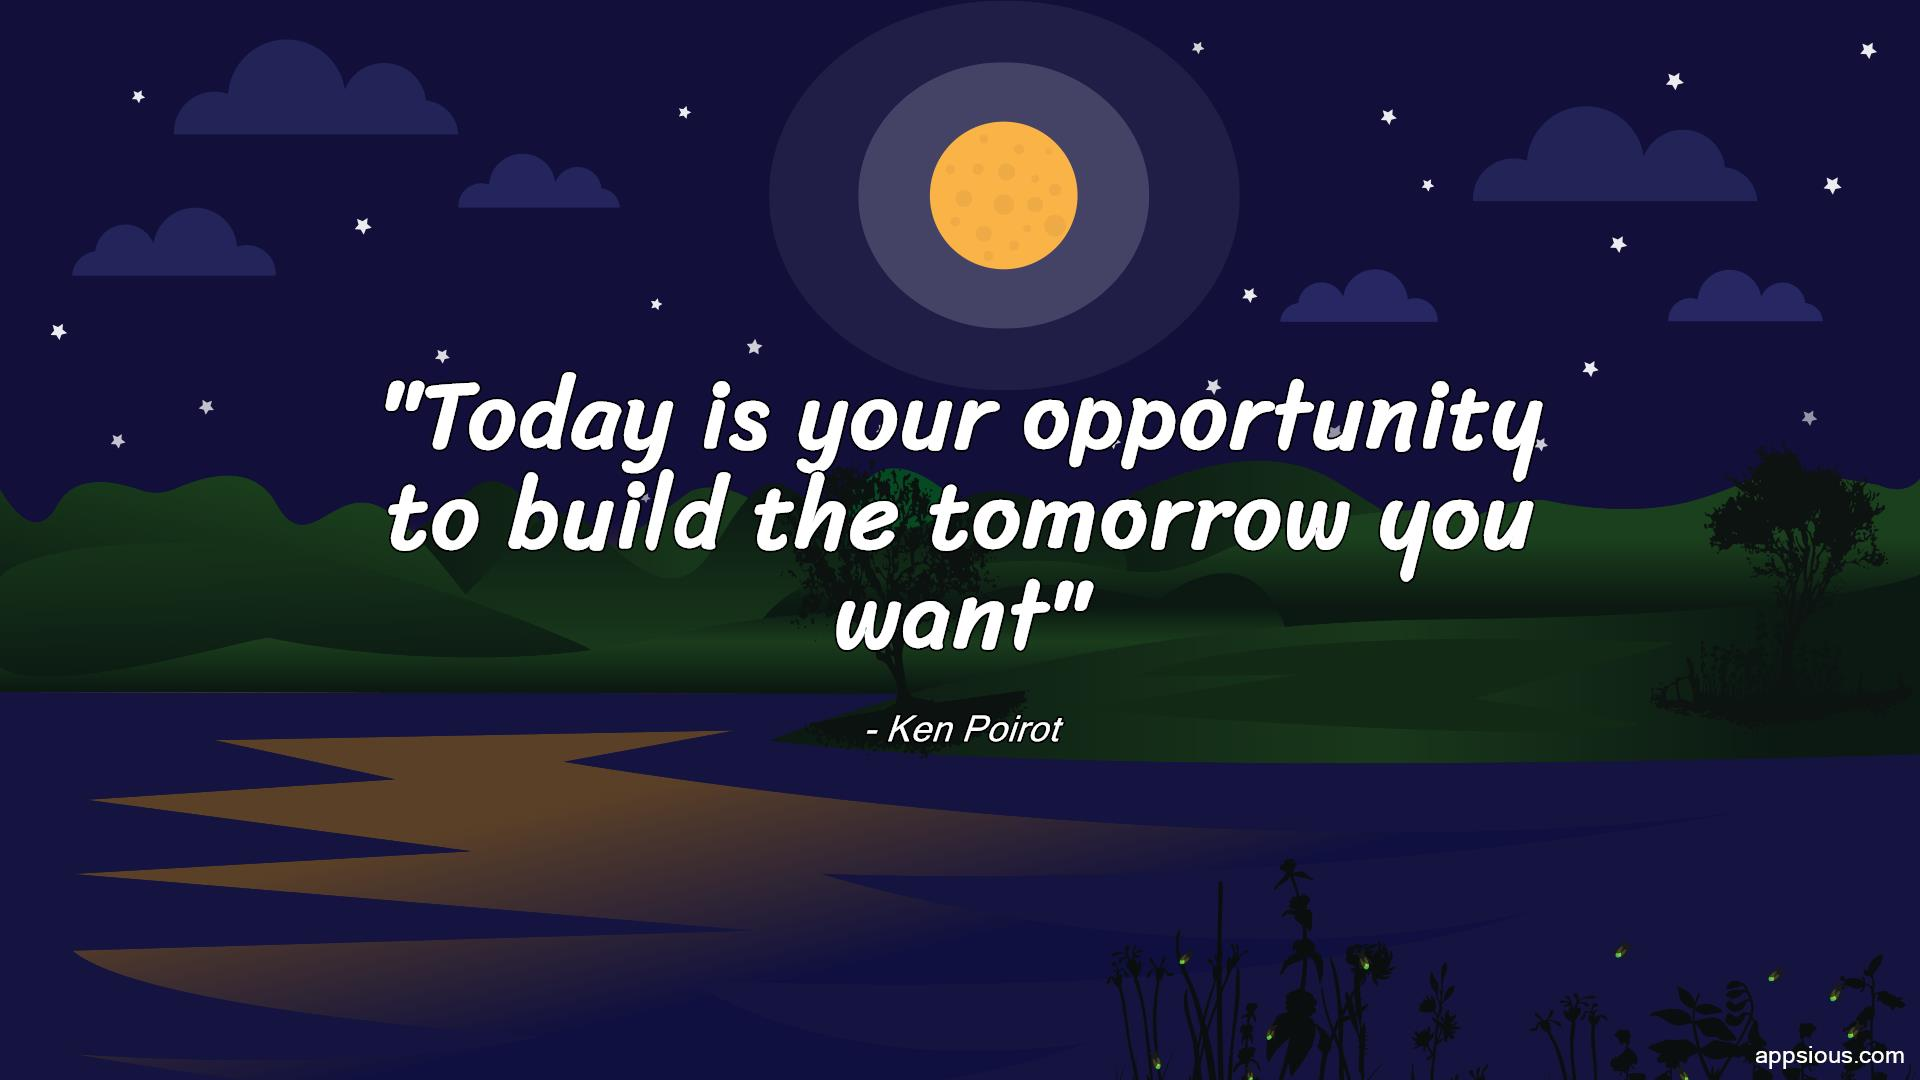 Today is your opportunity to build the tomorrow you want